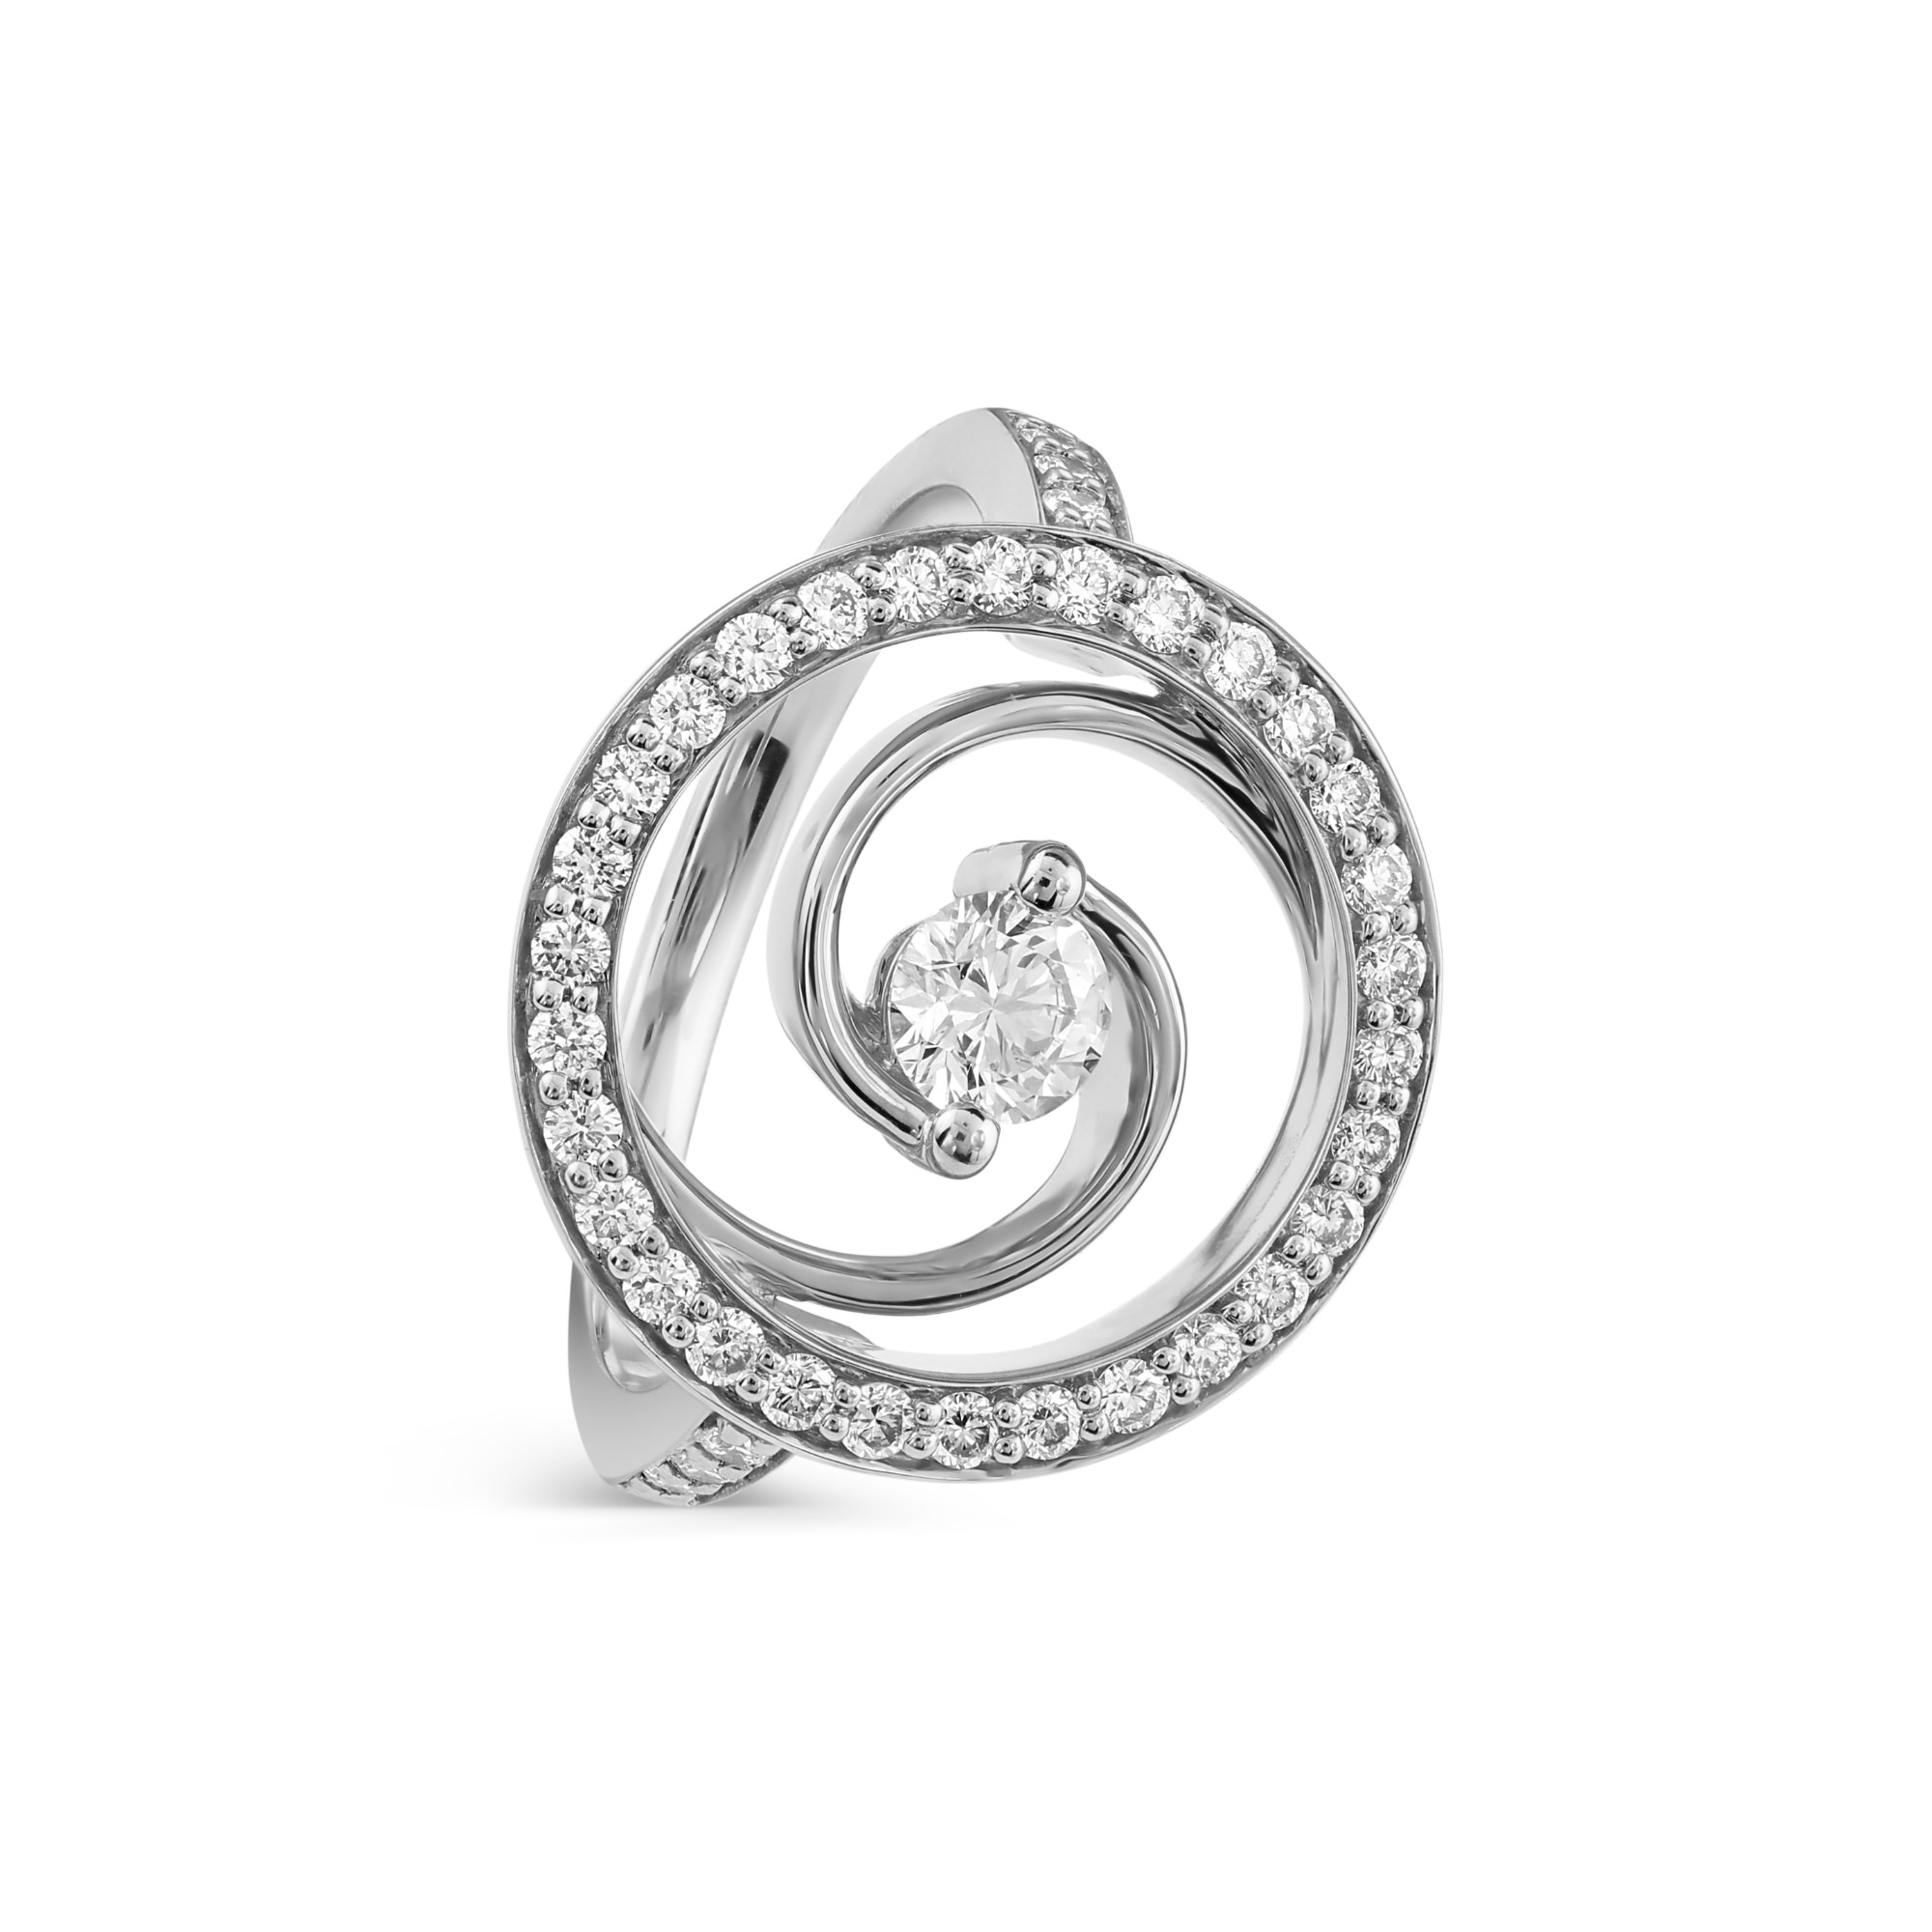 Whirlwind White Gold Diamond Ring